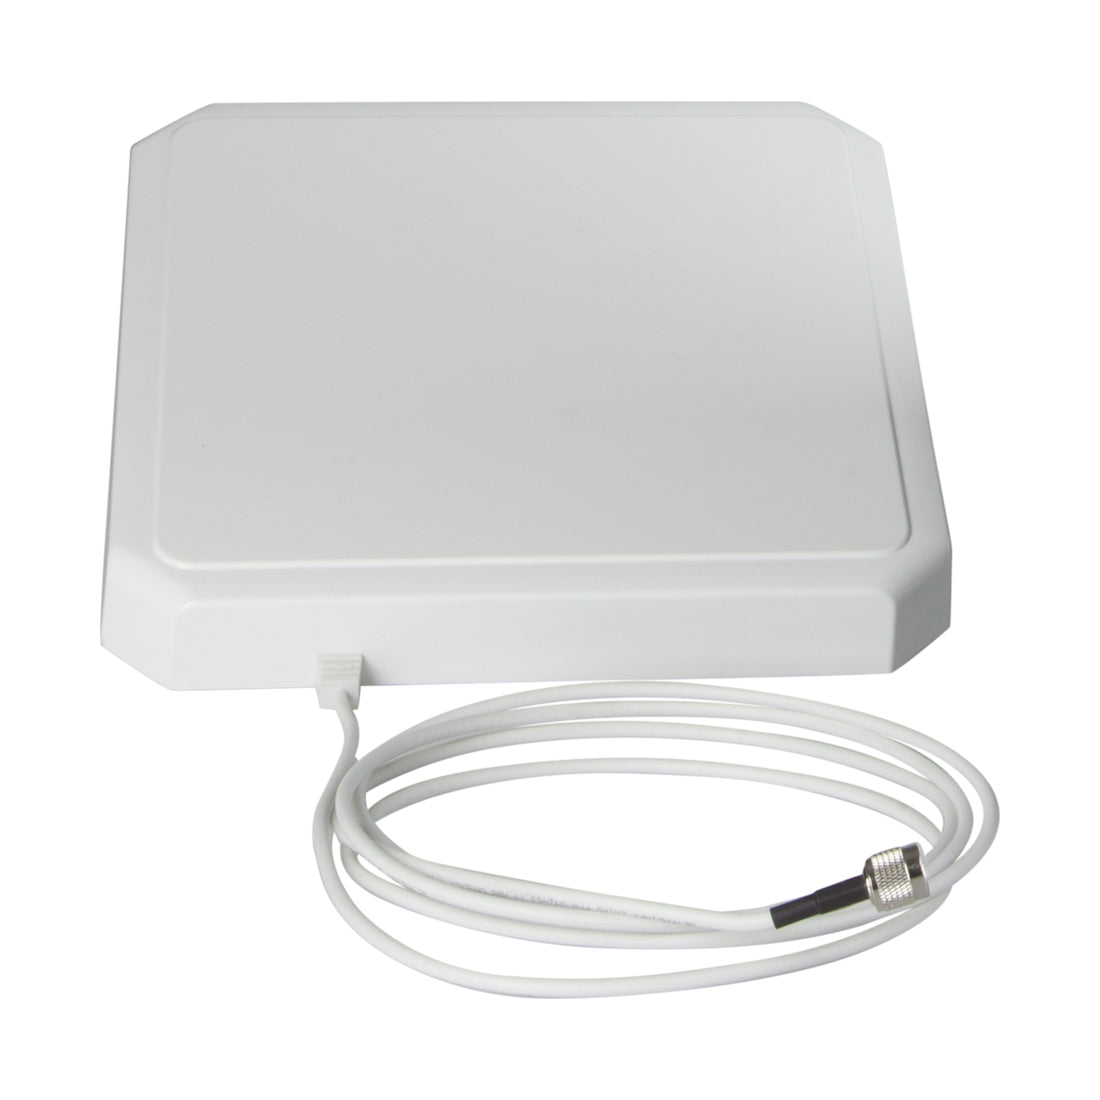 RCPR-902-8-RTM-8-A: 10x10 inch RHCP FCC RFID Antenna. Equivalent to IPJ-A-1001-USA